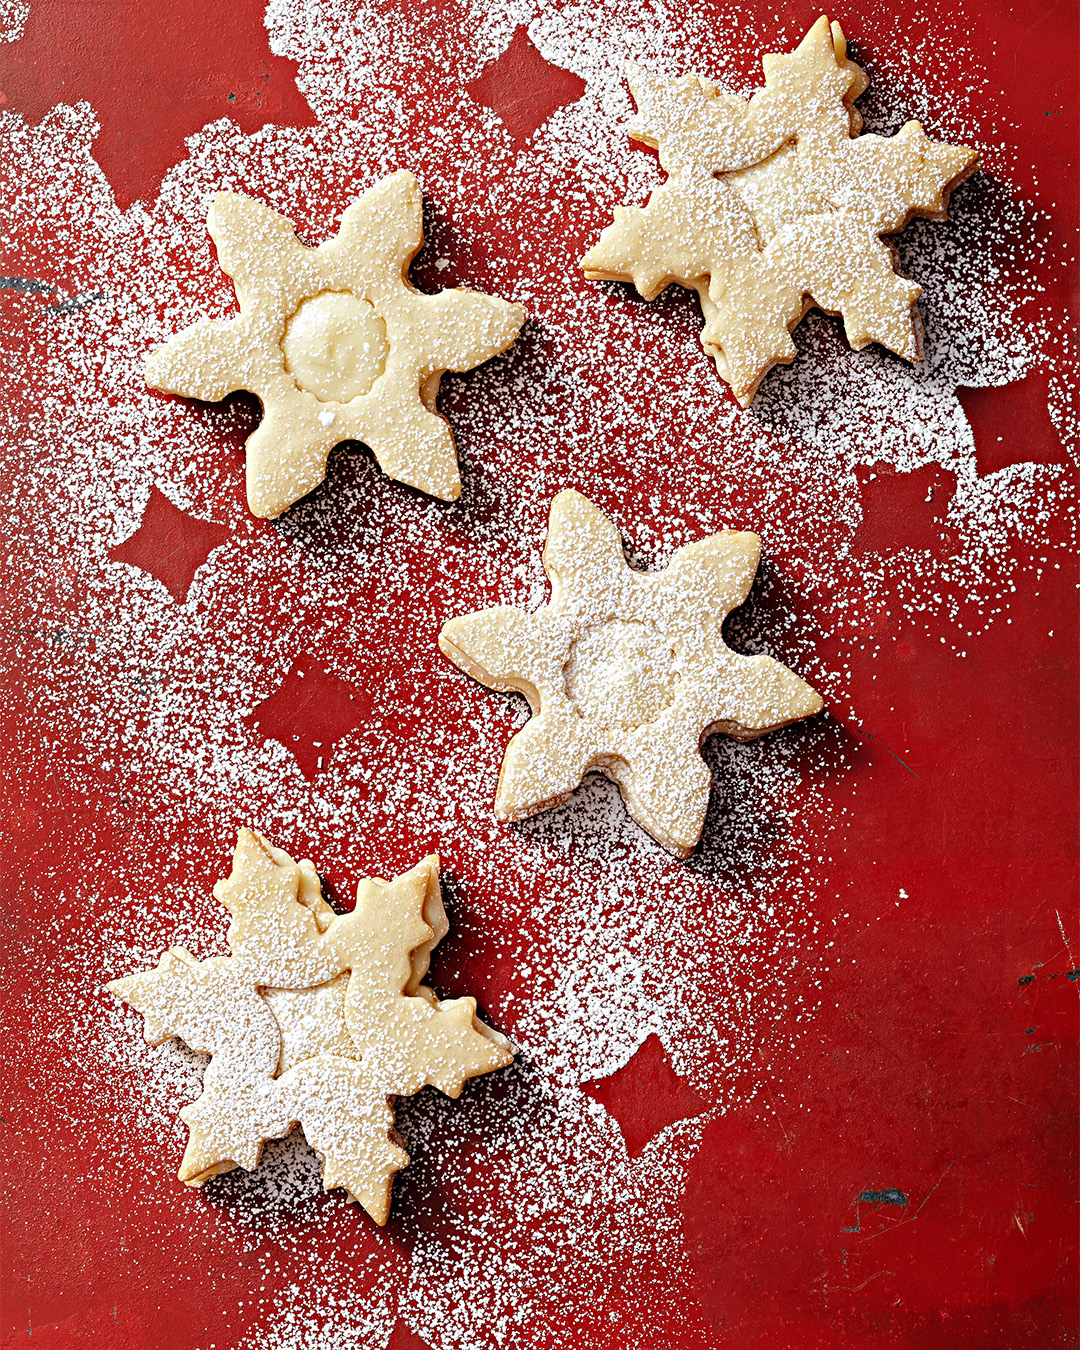 Lemony Snowflake Sandwich cookies on red table with powdered sugar